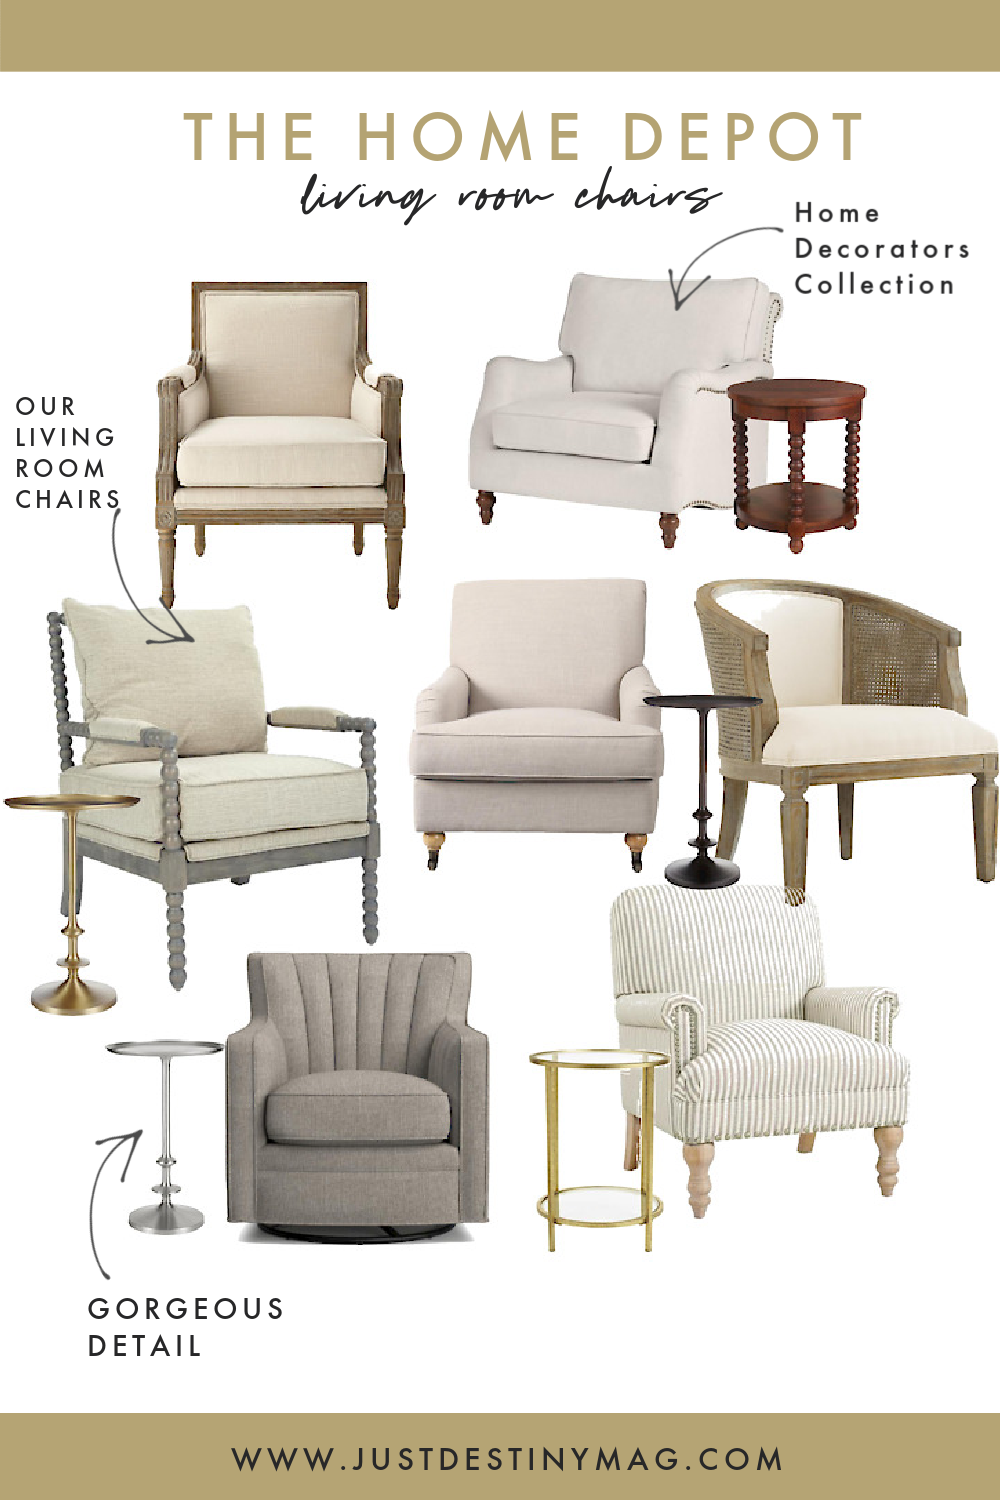 The Home Depot Online Living Room Chairs and Furniture Reviews